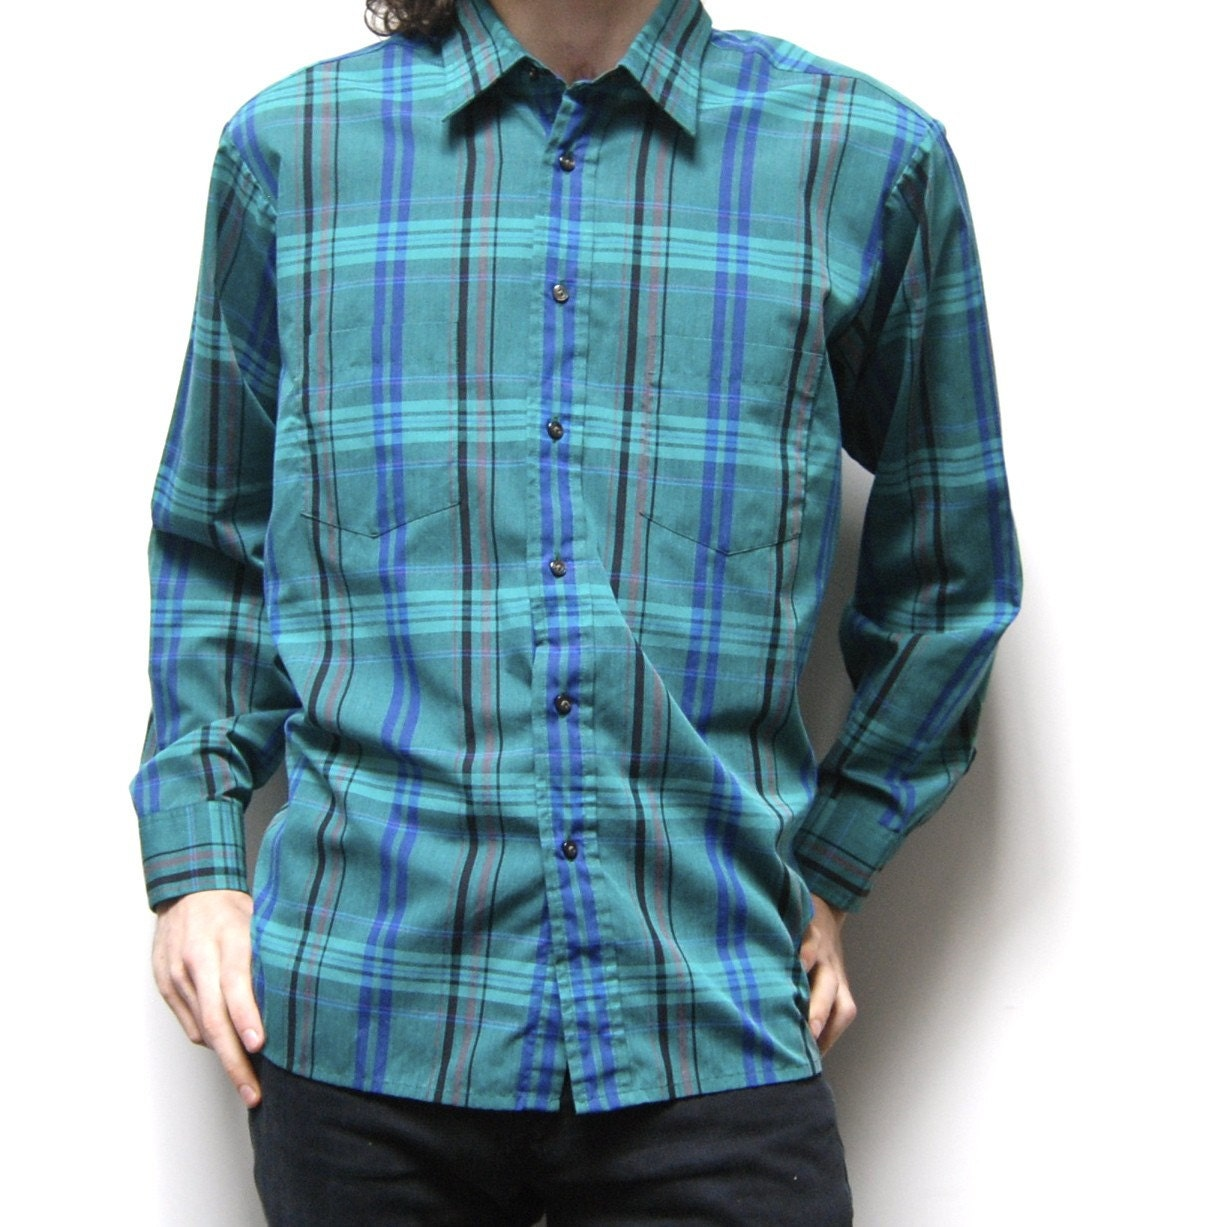 VIBRANT PLAID shirt tartan TURQUOISE long sleeve button up